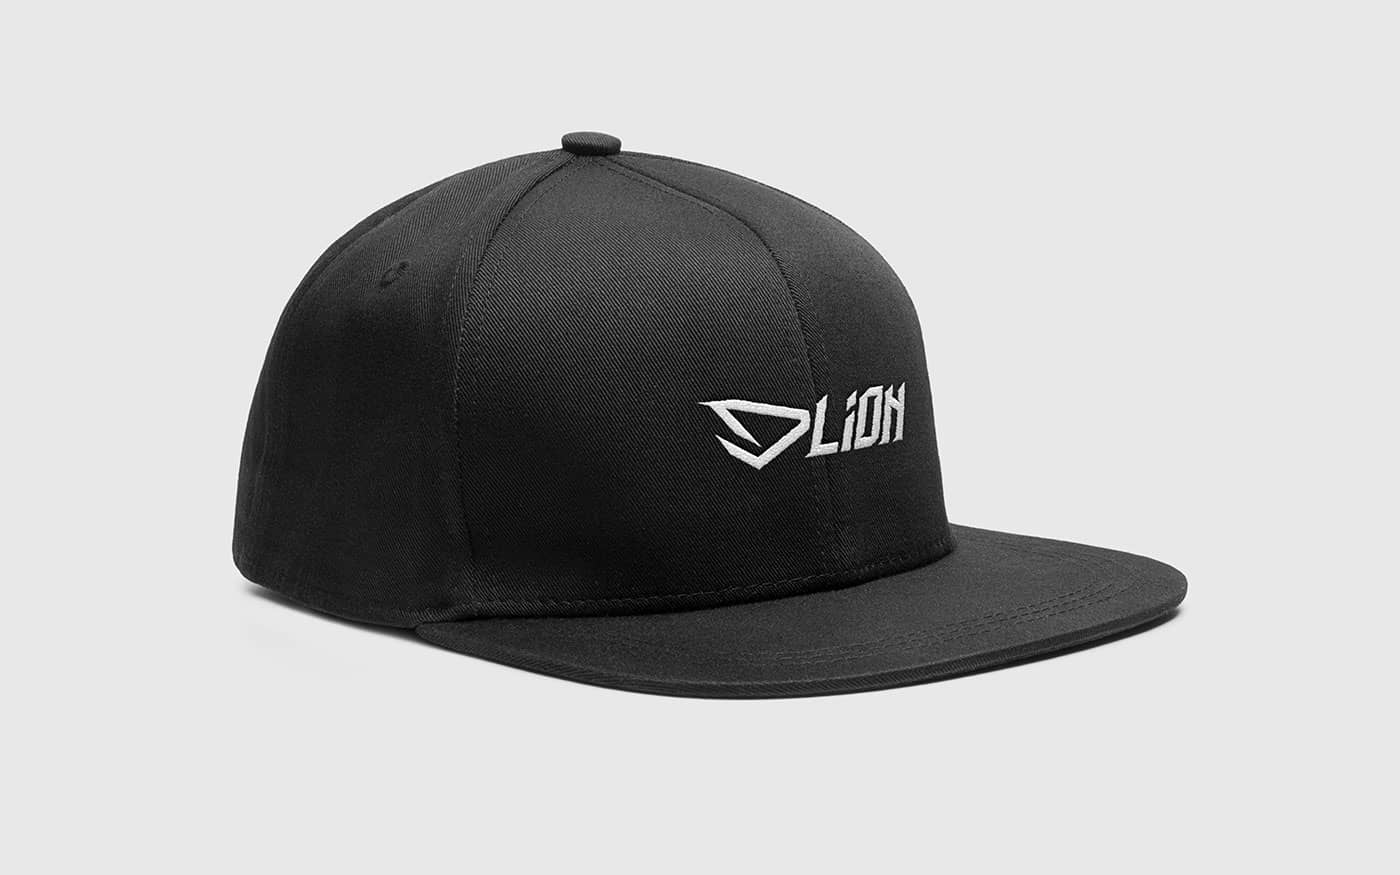 DLION mockup cappello da baseball